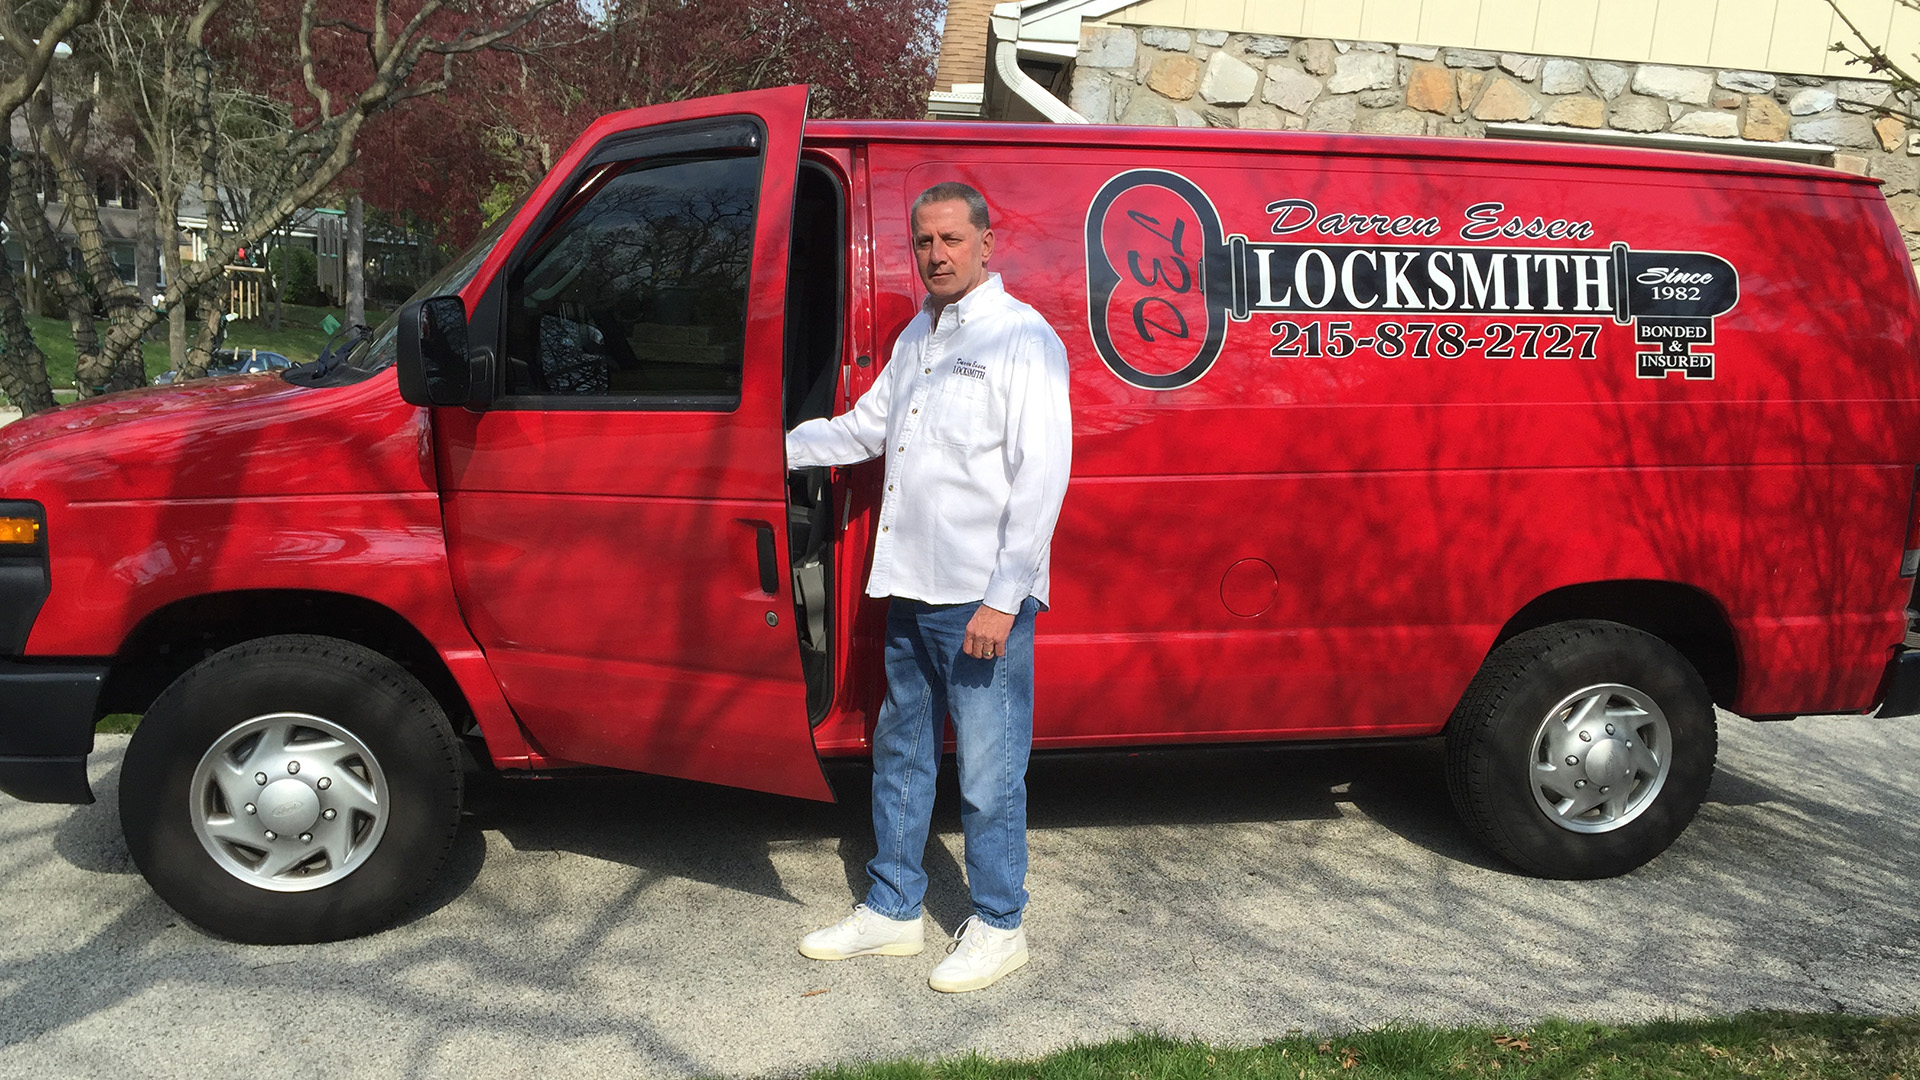 Haverford Township: Locksmith, Lockouts and Locks changed